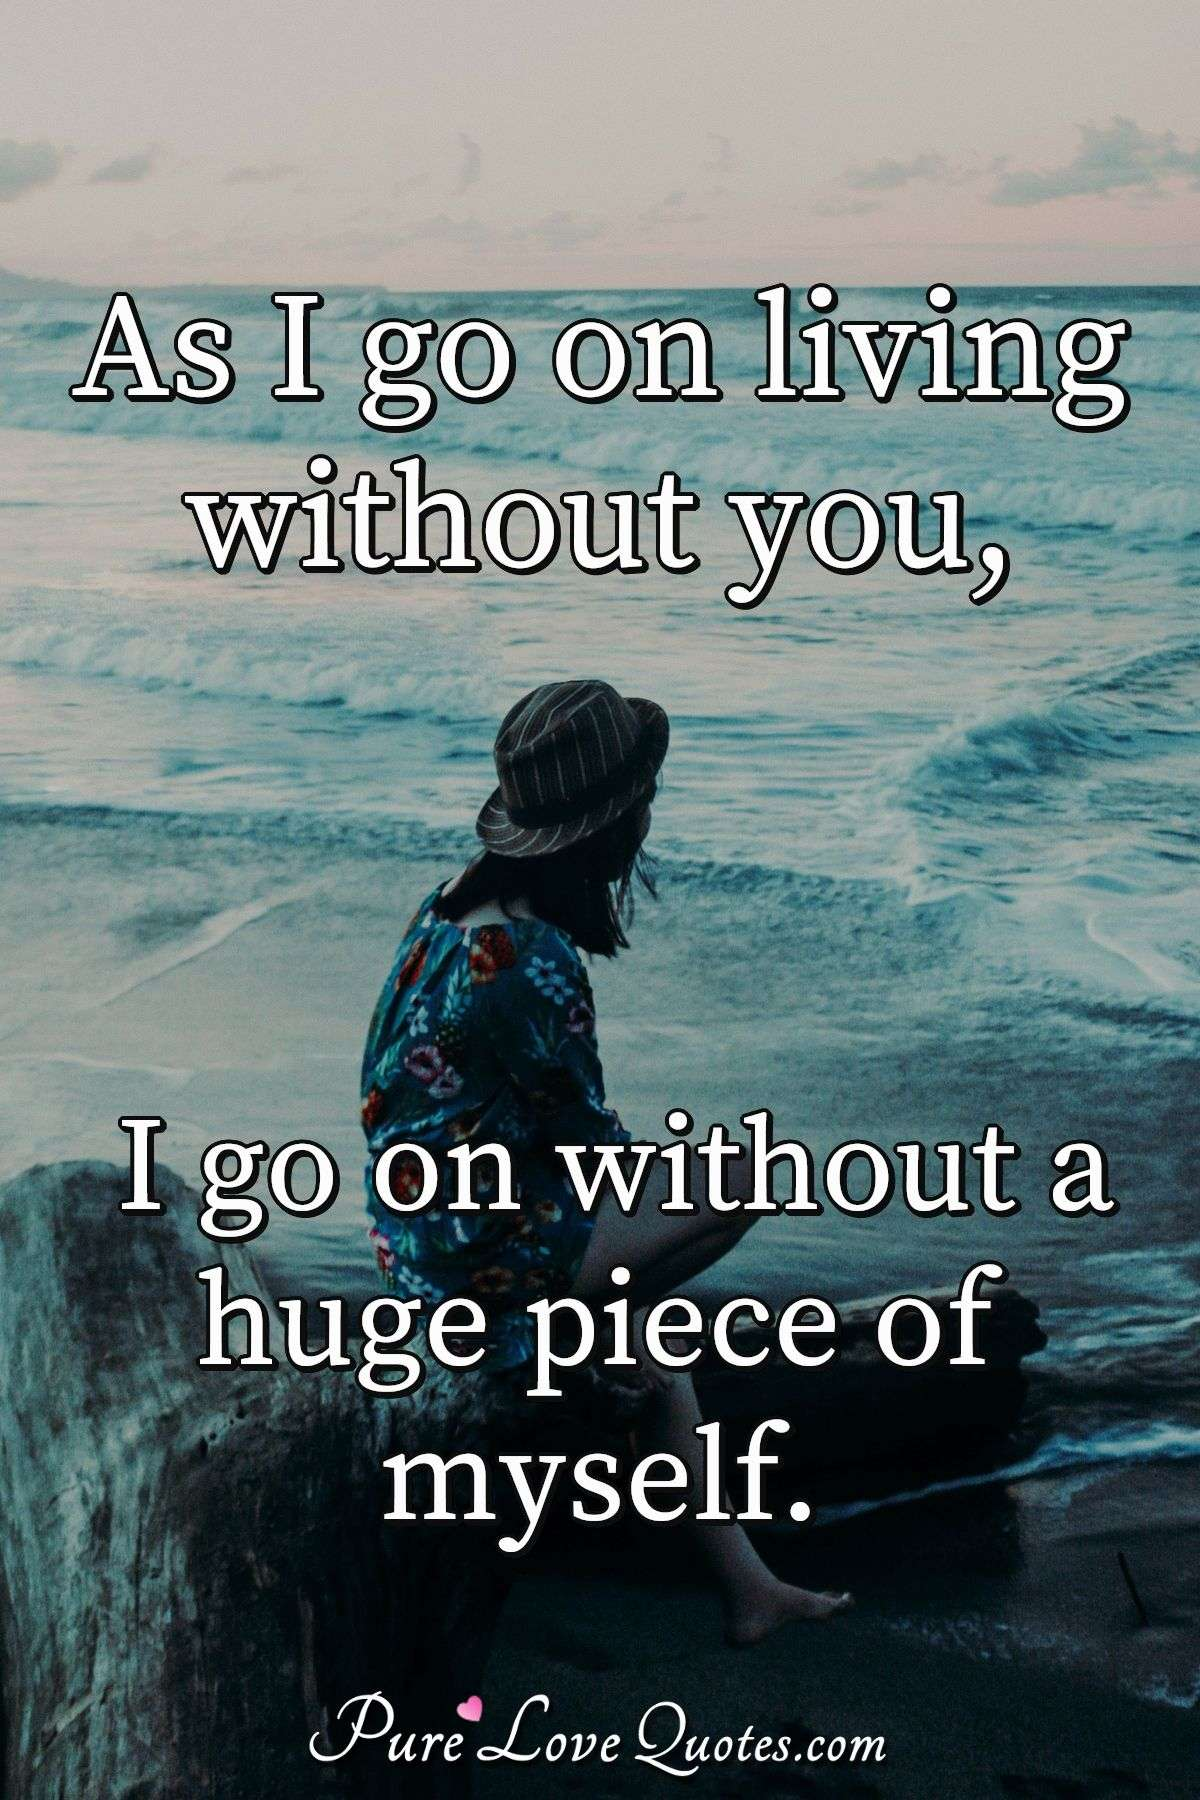 As I go on living without you, I go on without a huge piece of myself. - Anonymous